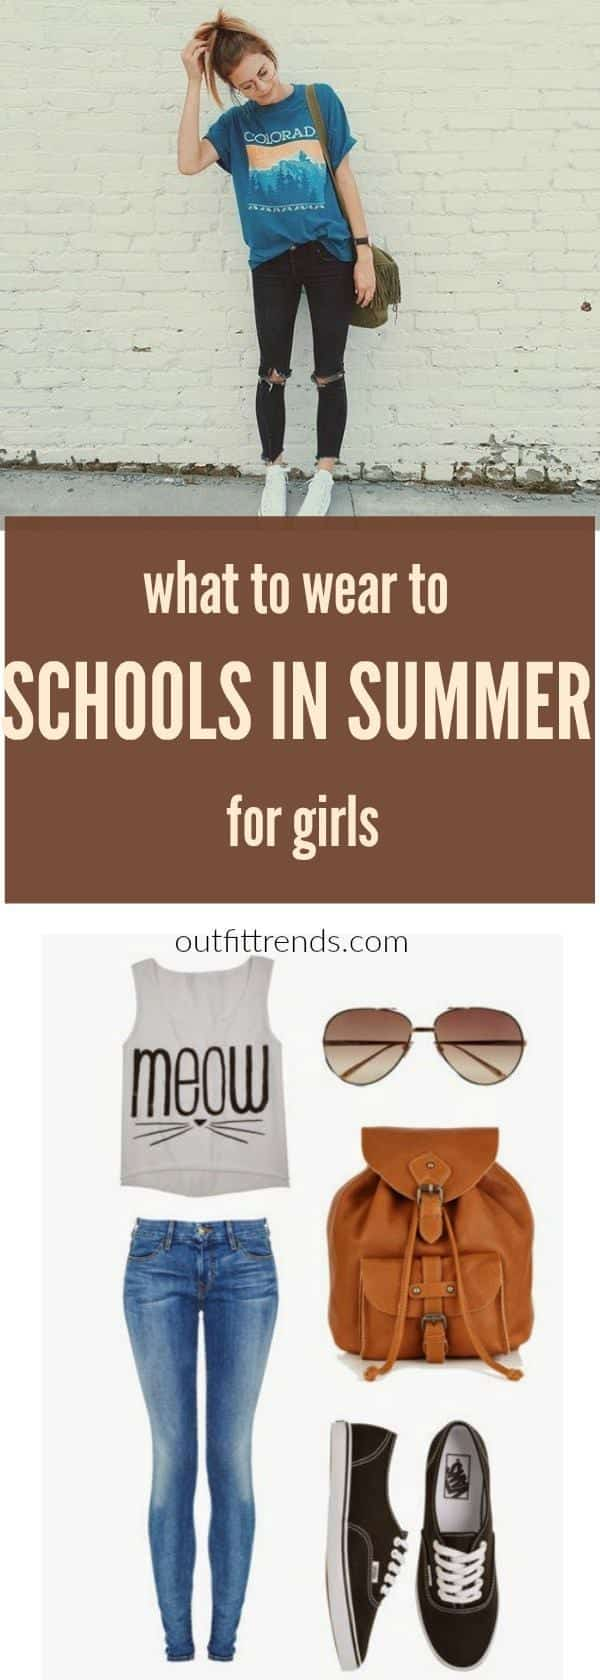 455d7a21e834 Summer School Outfits-30 School Outfits for Girls in Summers